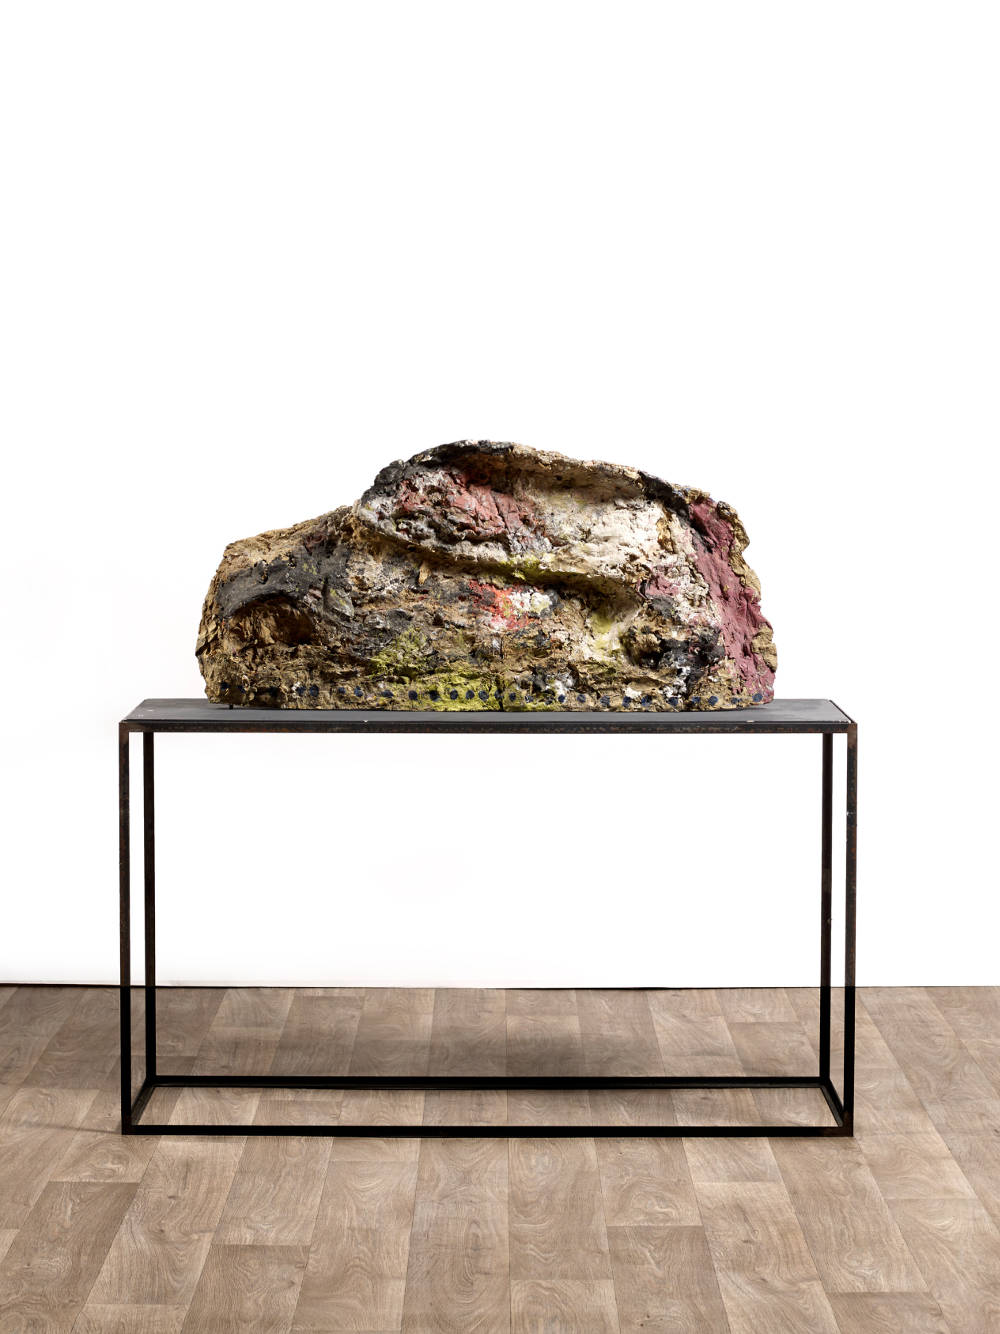 Franz West, Untitled (painted by Herbert Brandl), 1986. Oil on cotton gauze on papier-mâché, artist's metal table 54 by 110 by 22cm (21 1/4 by 43 5/16 by 8 11/16 in.)